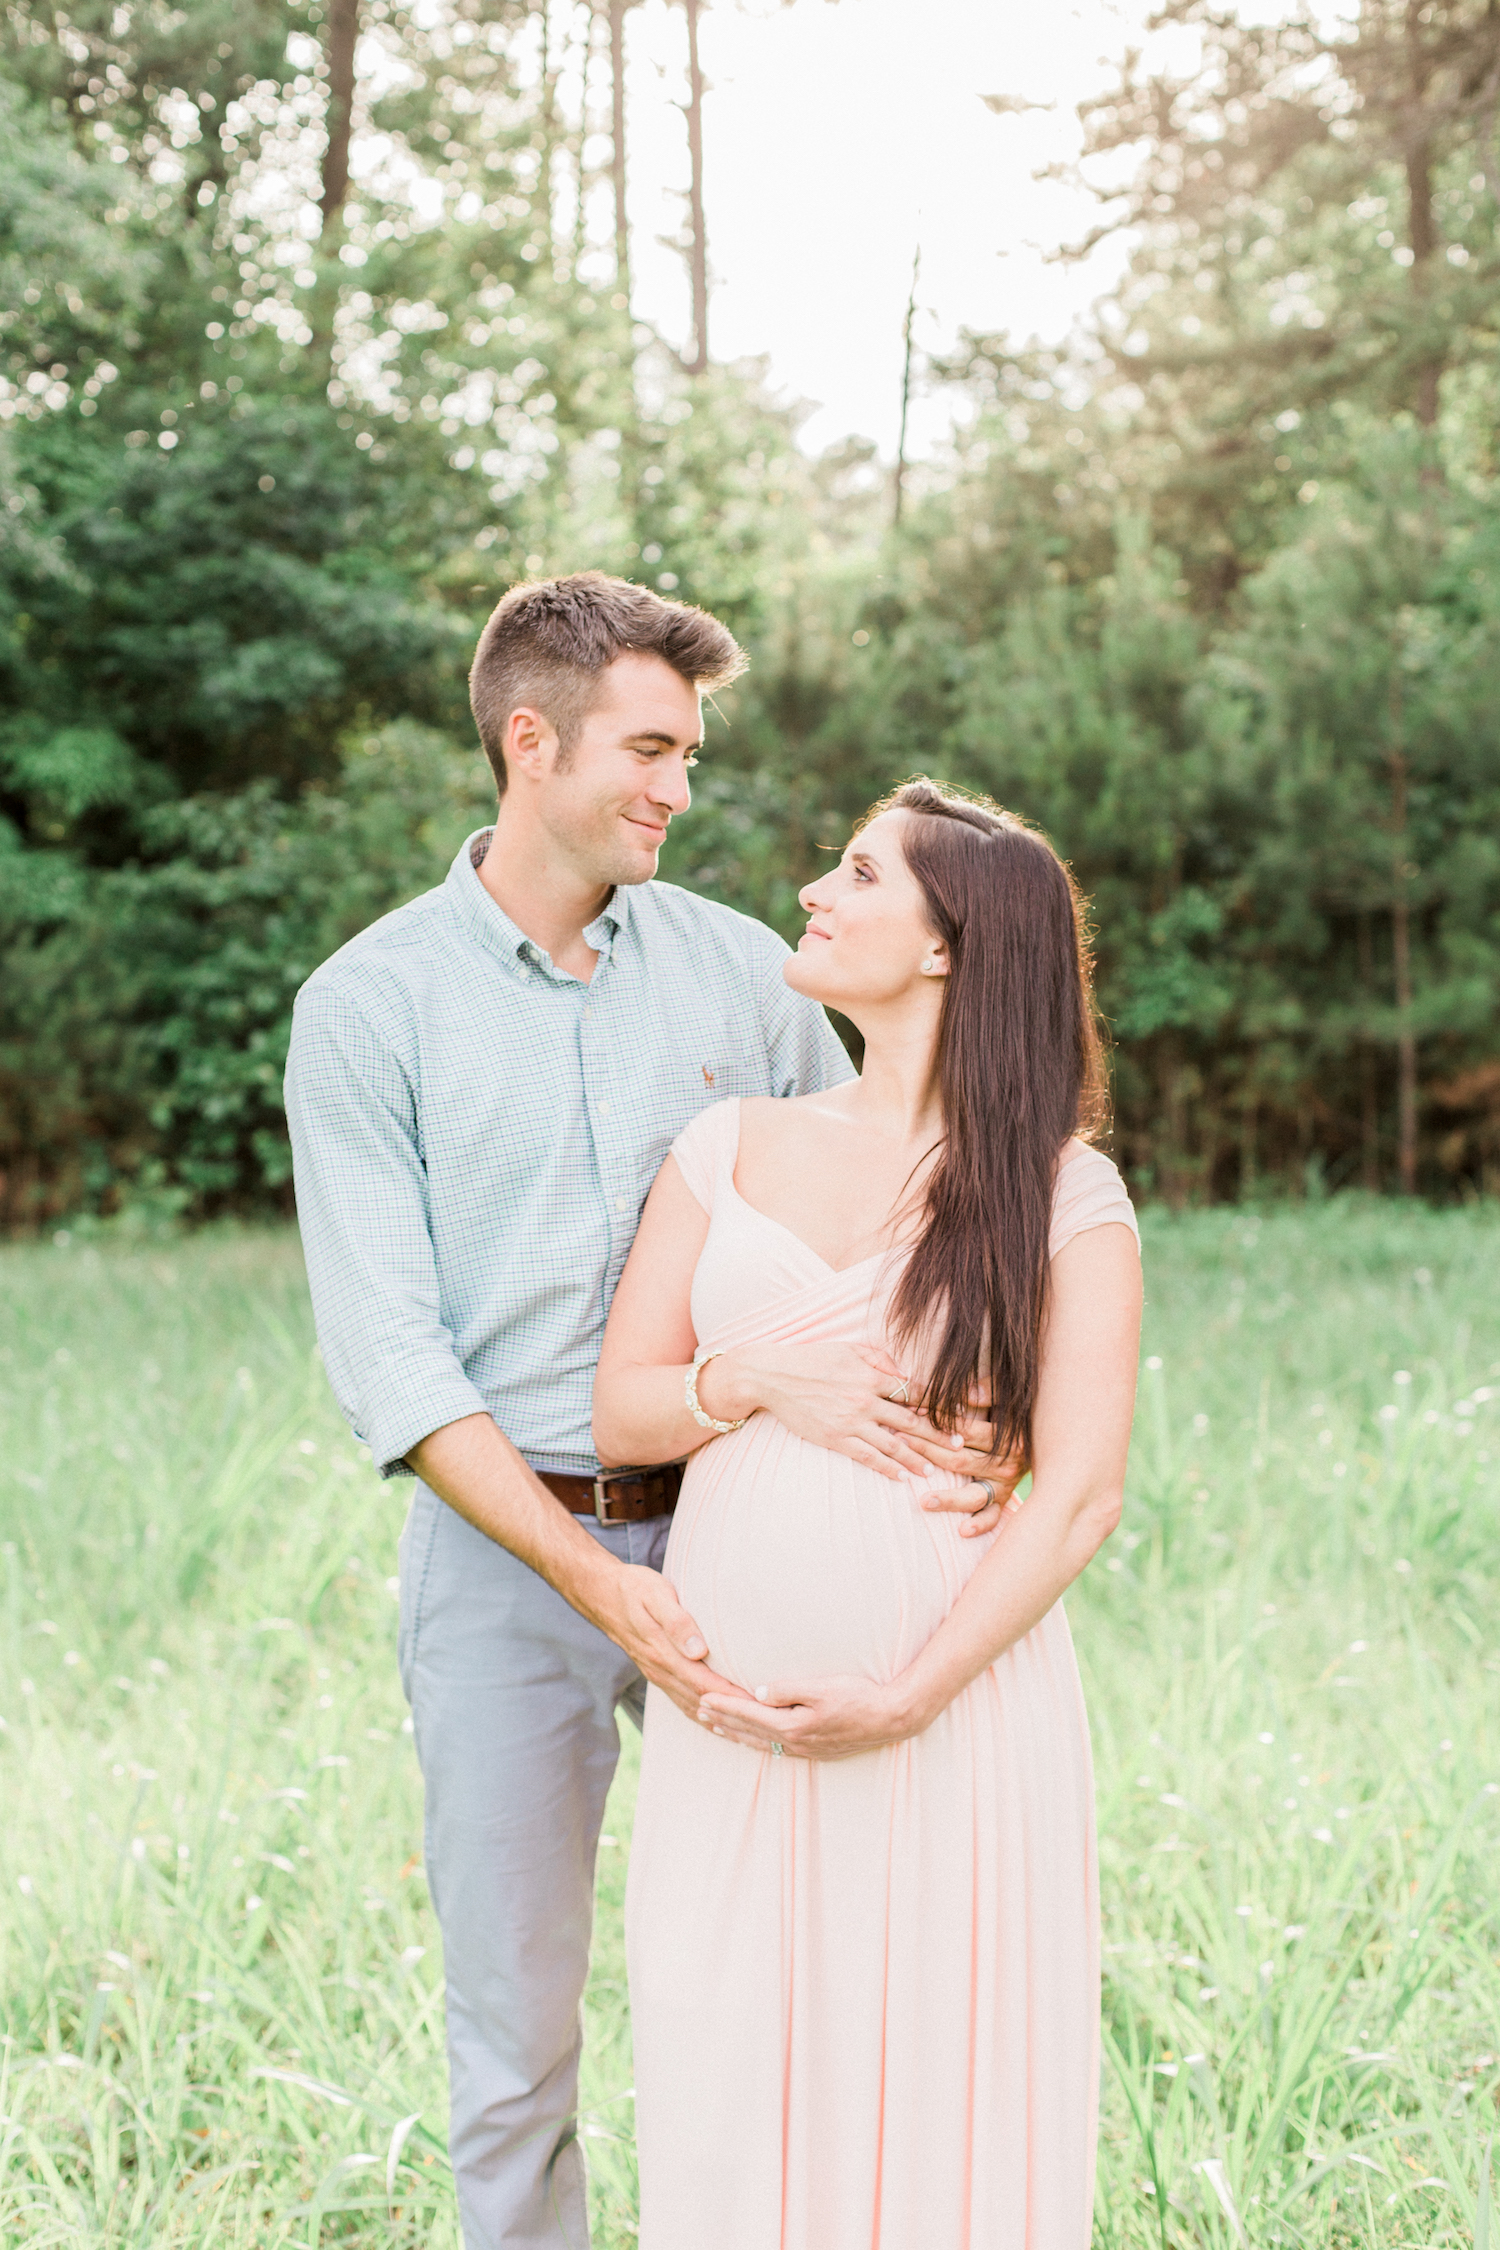 Spring time maternity session outside. Blush pink maternity dress.